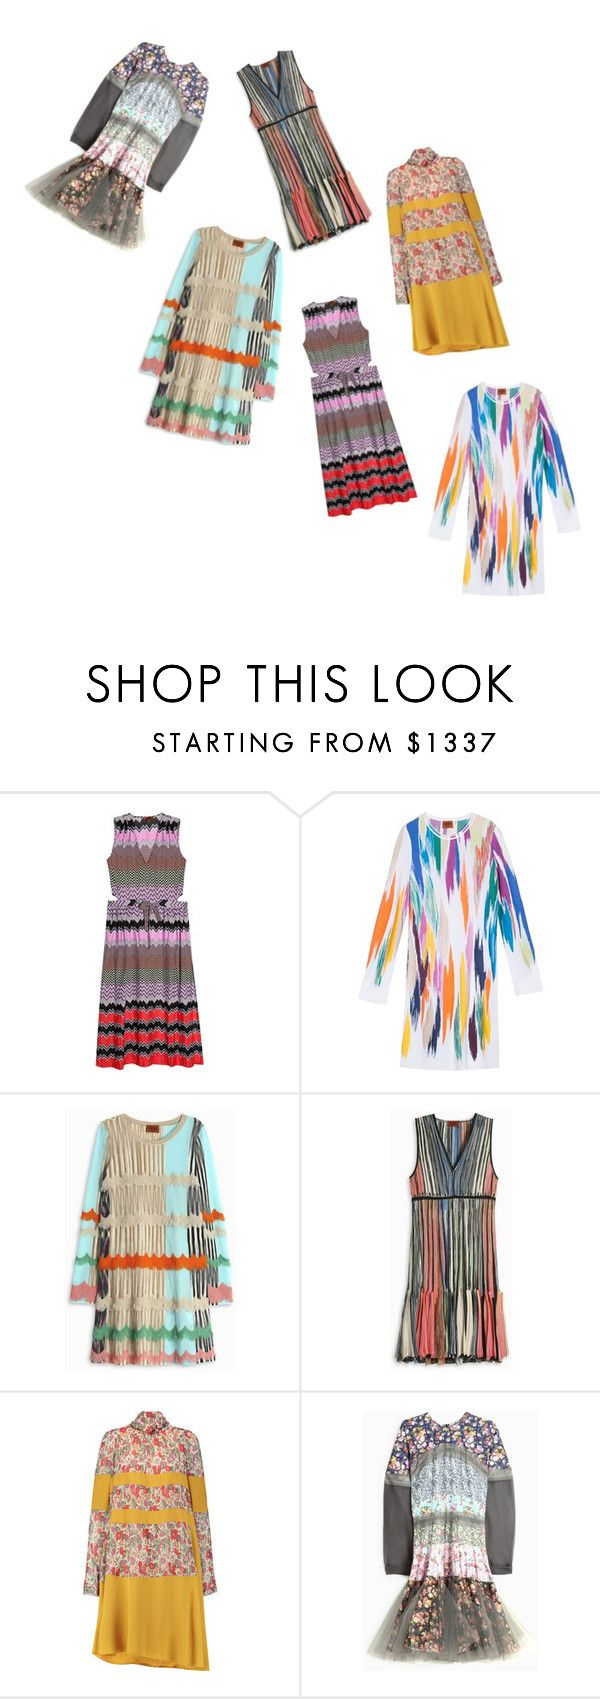 """Multi Colour Dress..**"" by yagna ❤ liked on Polyvore featuring Missoni, Sonia Rykiel and Natasha Zinko"